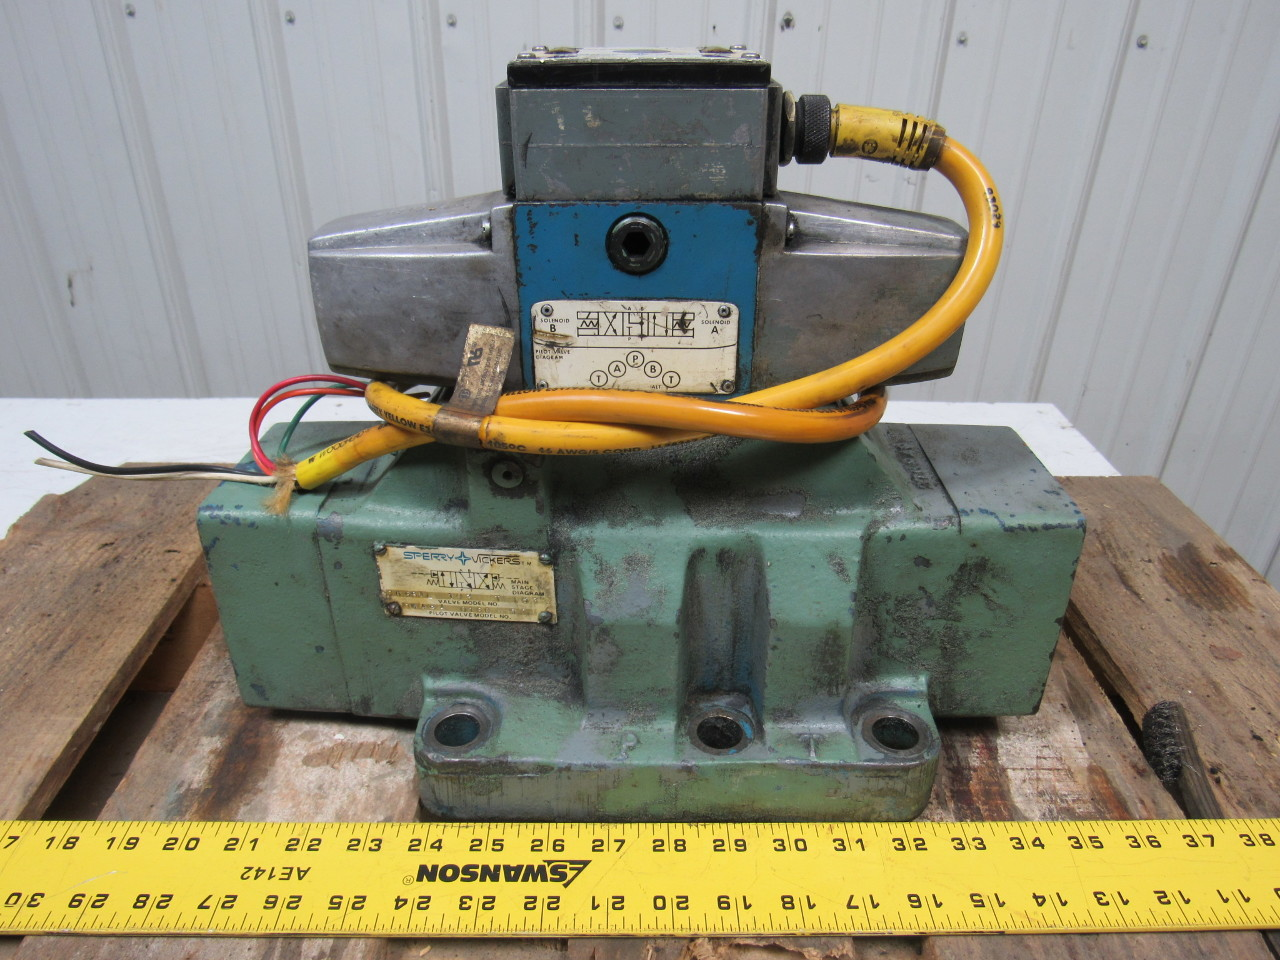 Sperry Vickers DG5S4L 103 T 53 Hydraulic Directional Control Valve